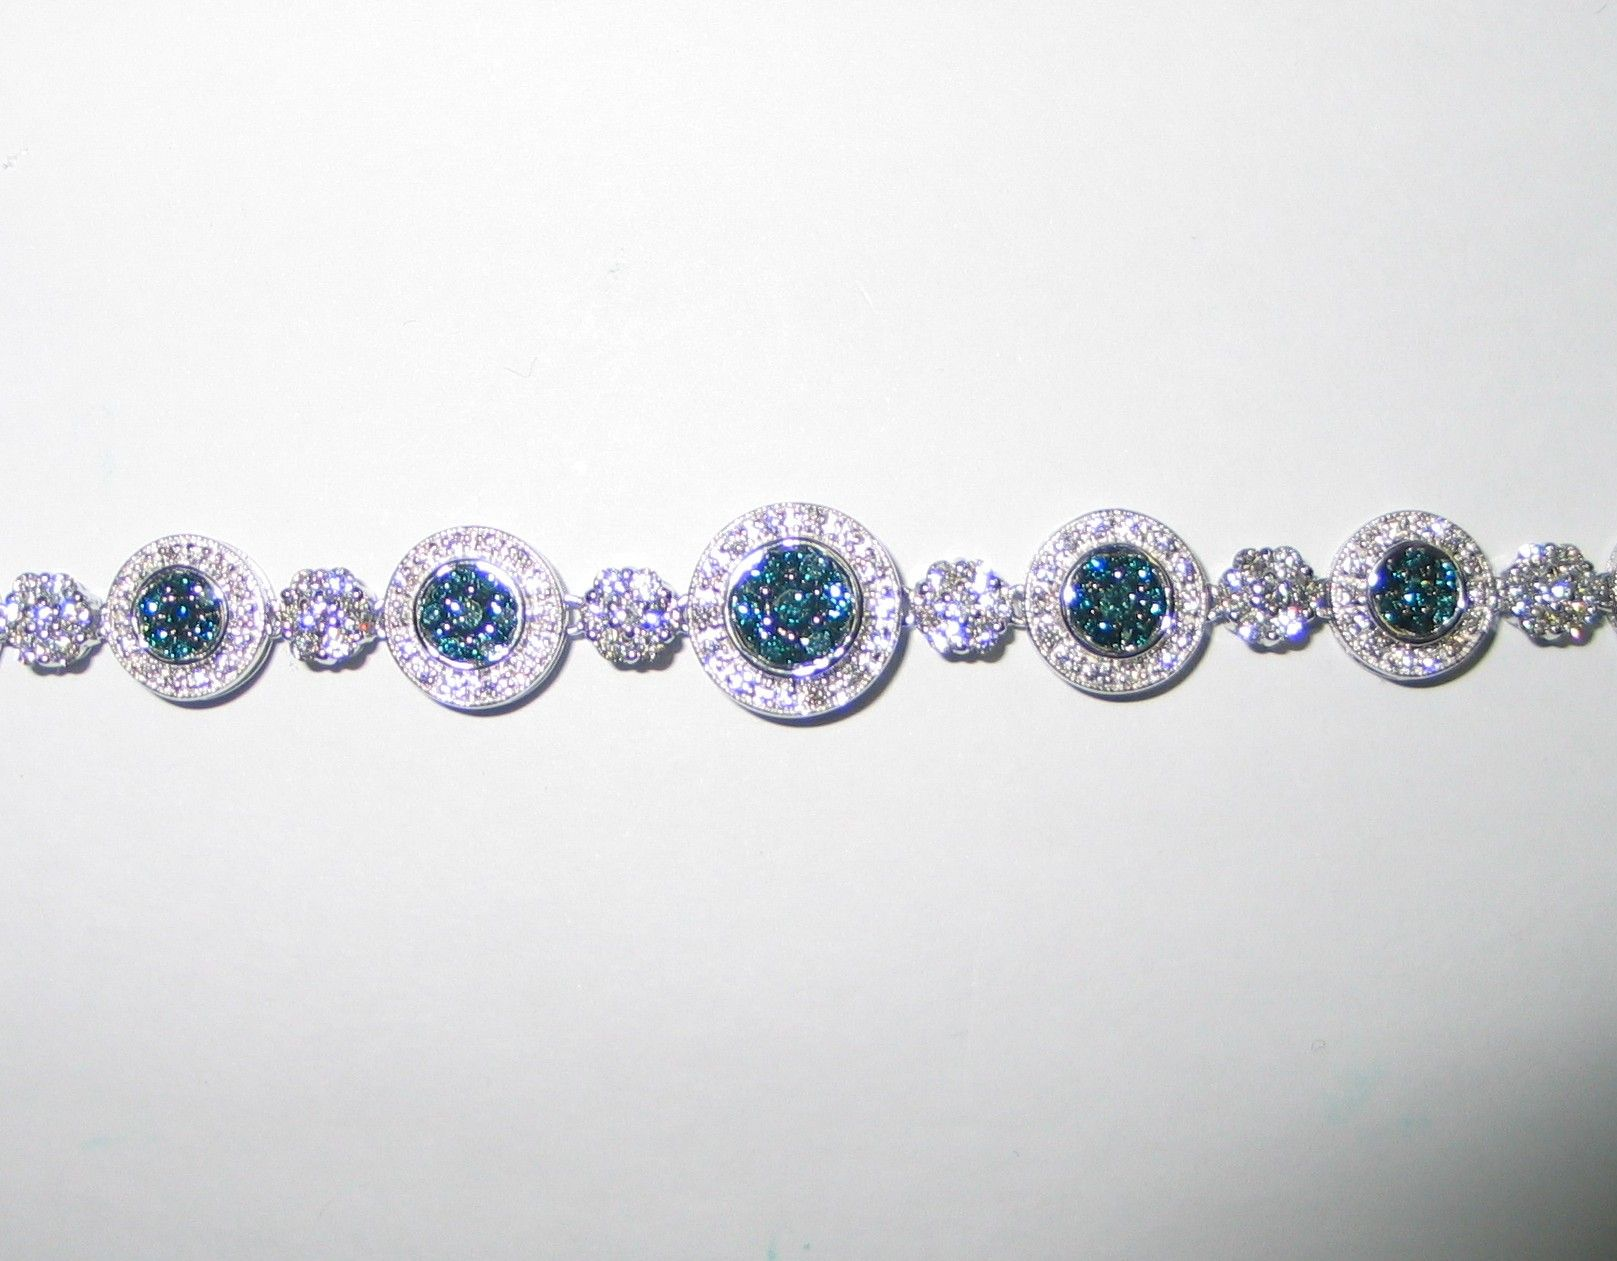 Blue diamond bracelet huge discounts on beautiful jewelry at